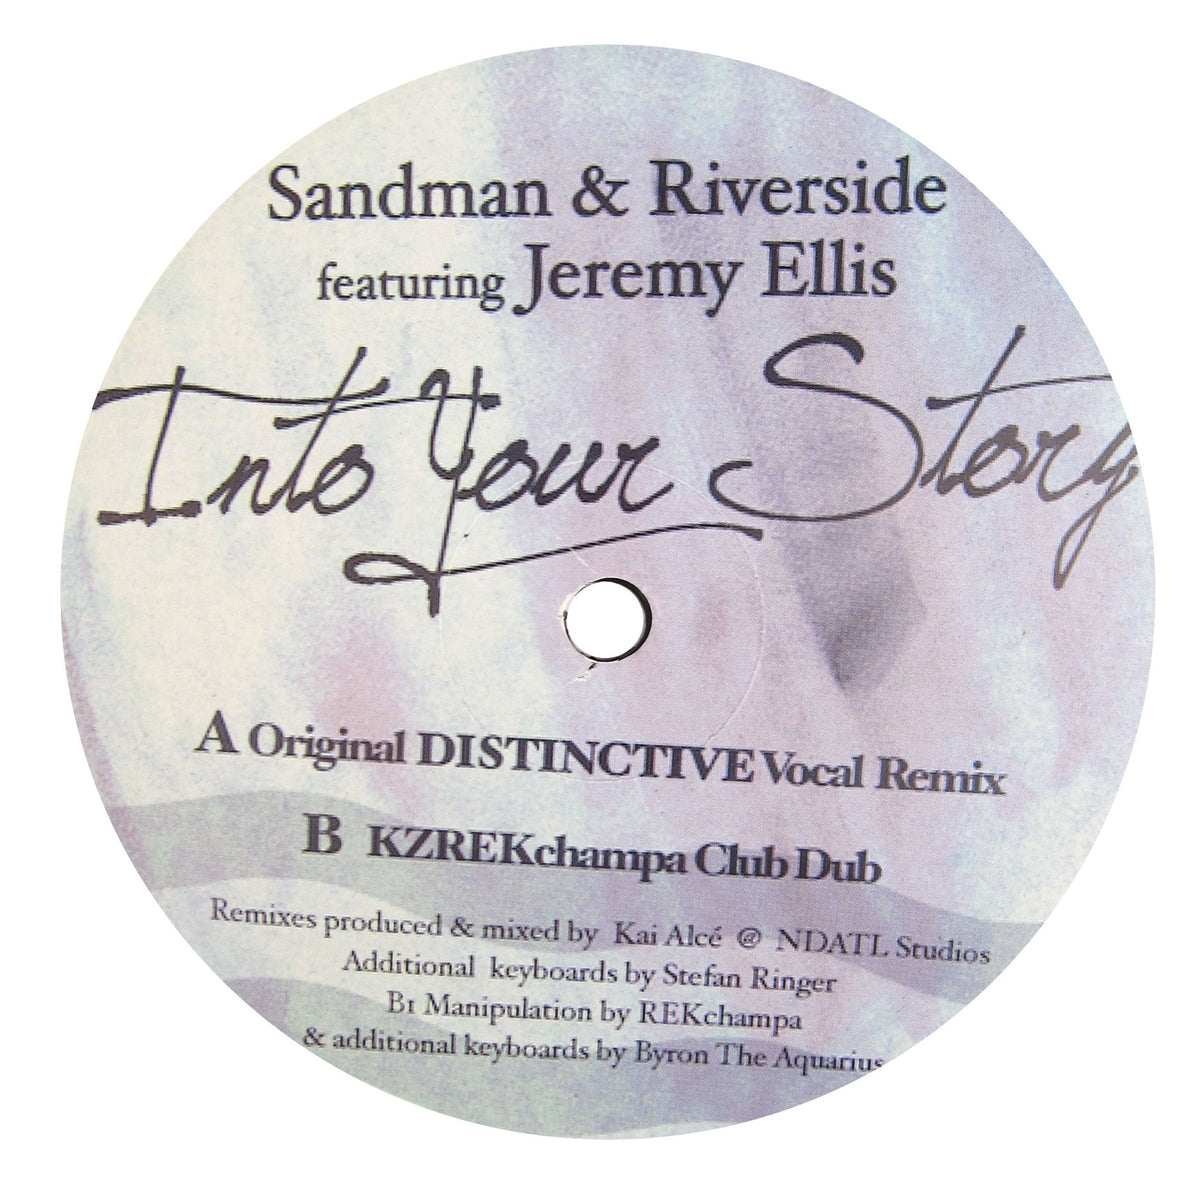 Sandman & Riverside: Into Your Story (Jeremy Ellis, Kai Alce) Vinyl 12""